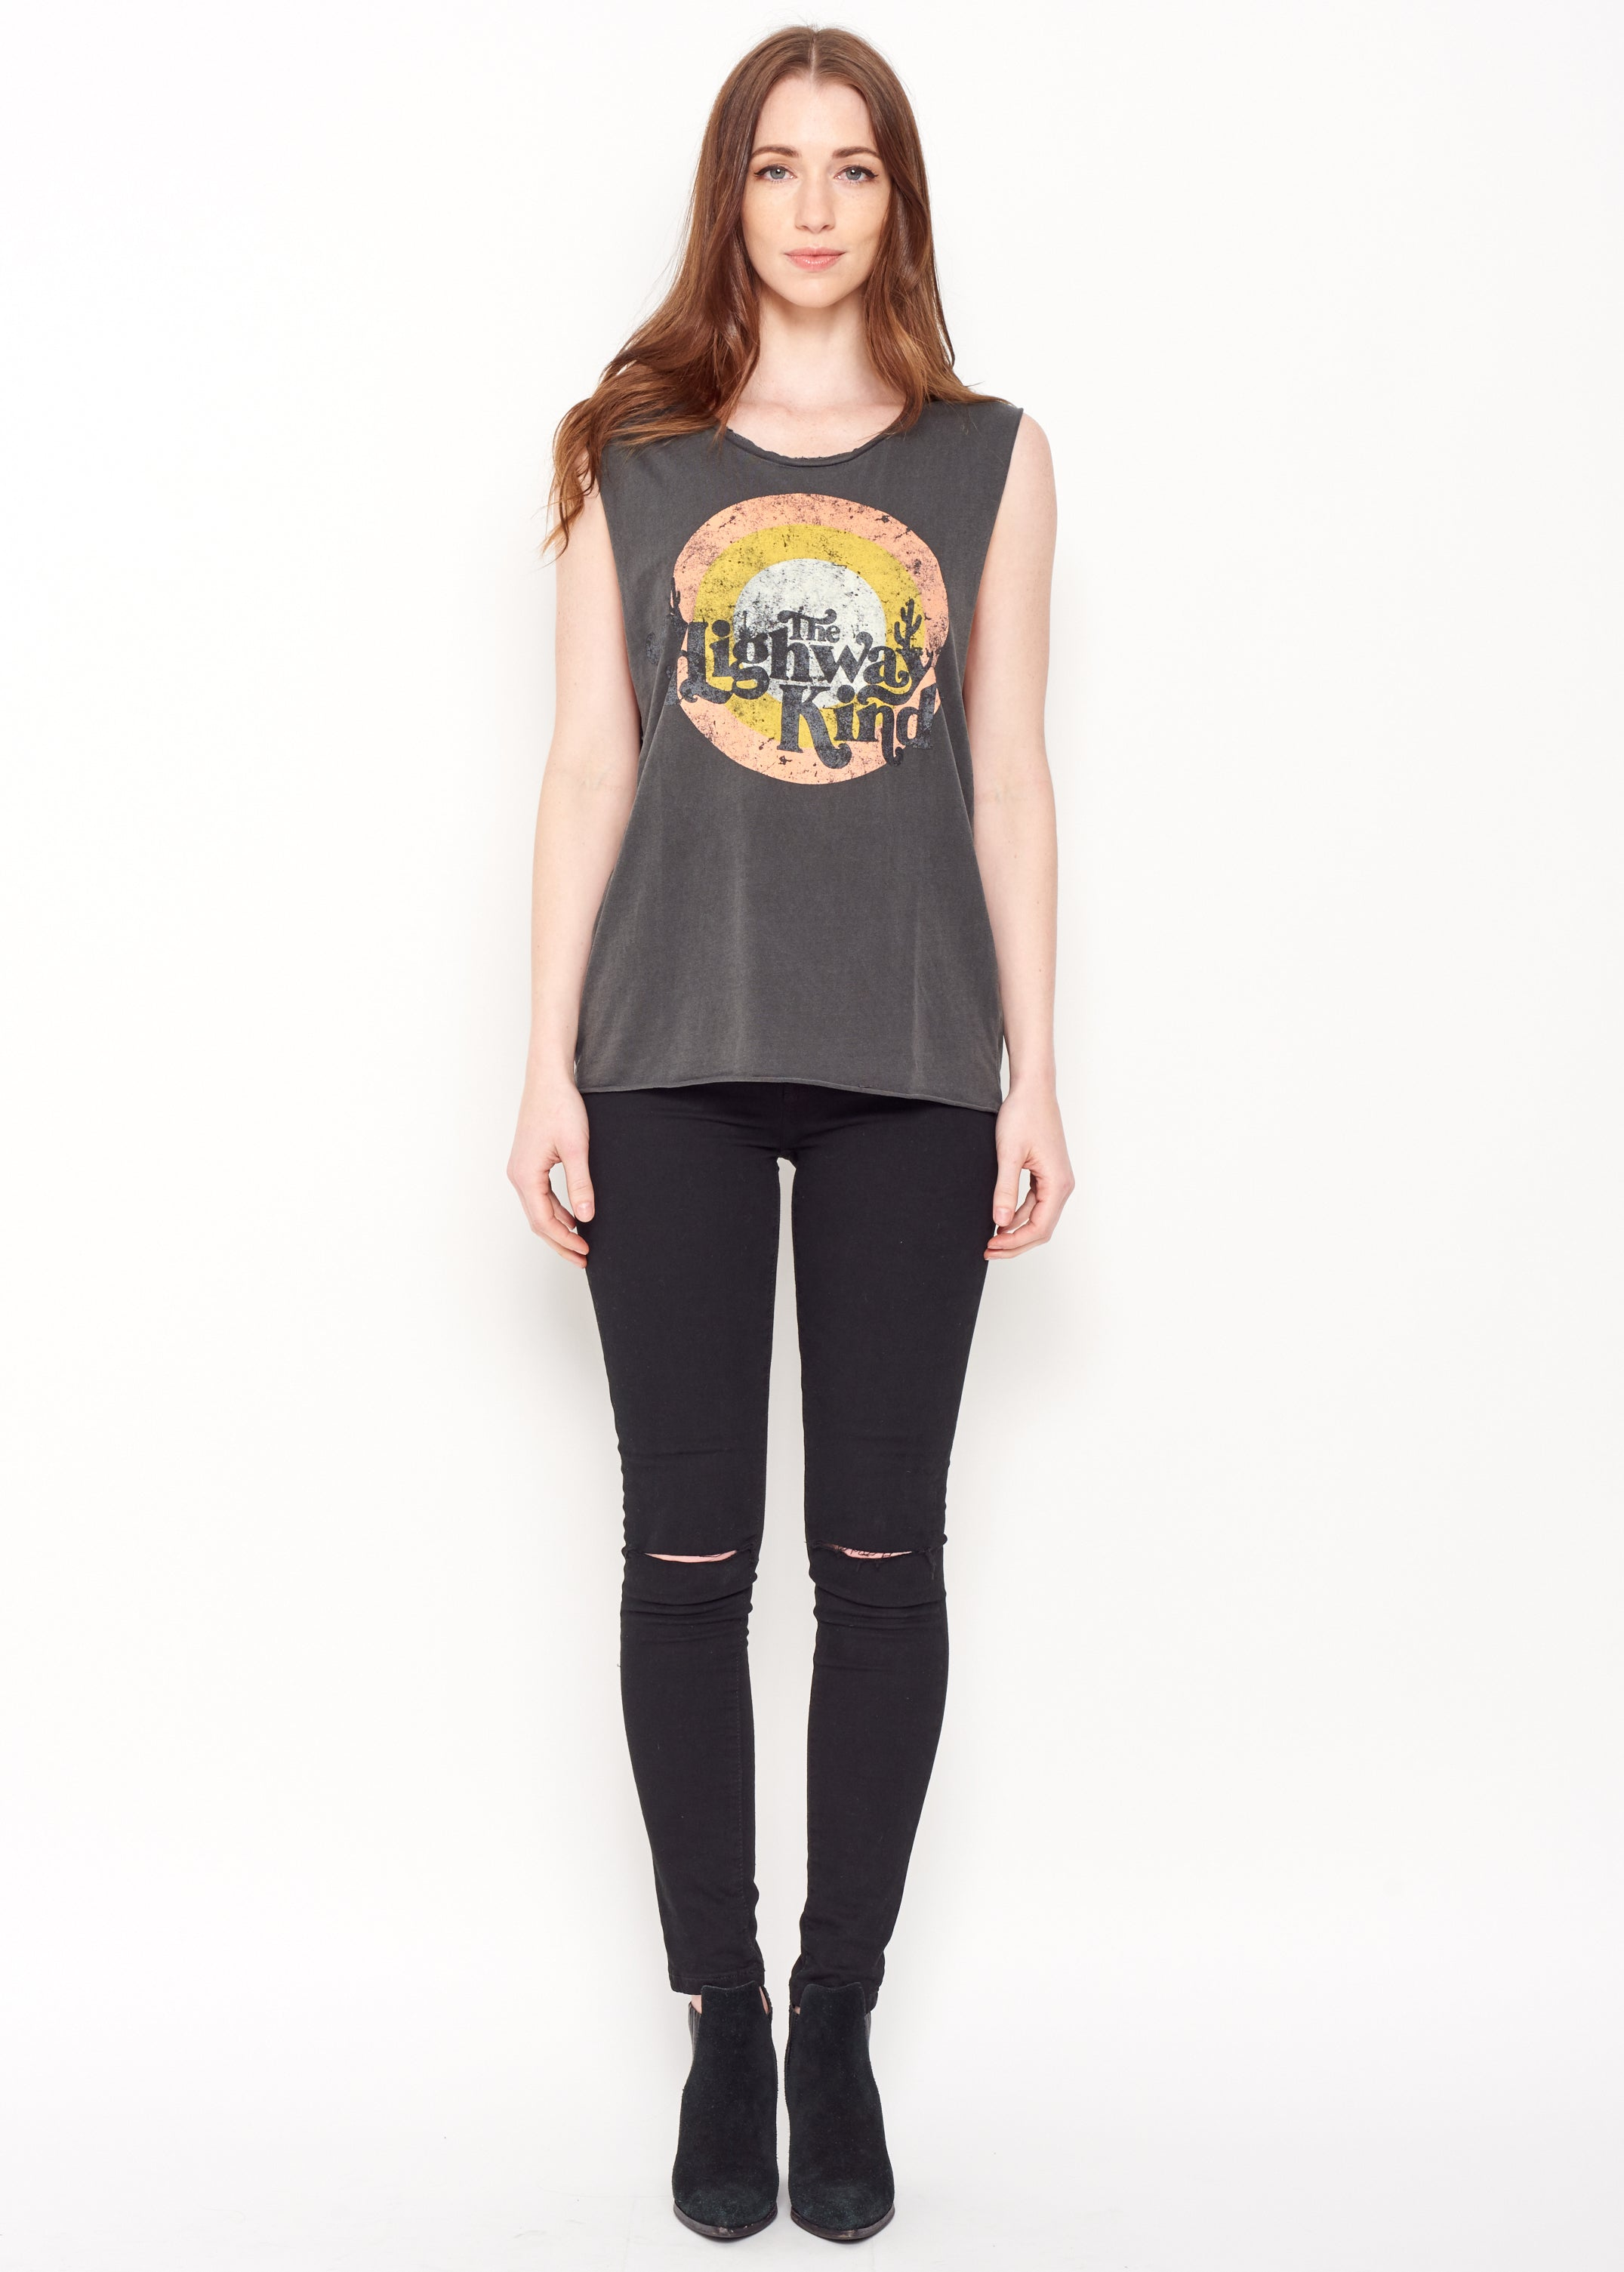 Highway Kind Muscle Tee - Vintage Black - Women's Muscle Tee - Midnight Rider